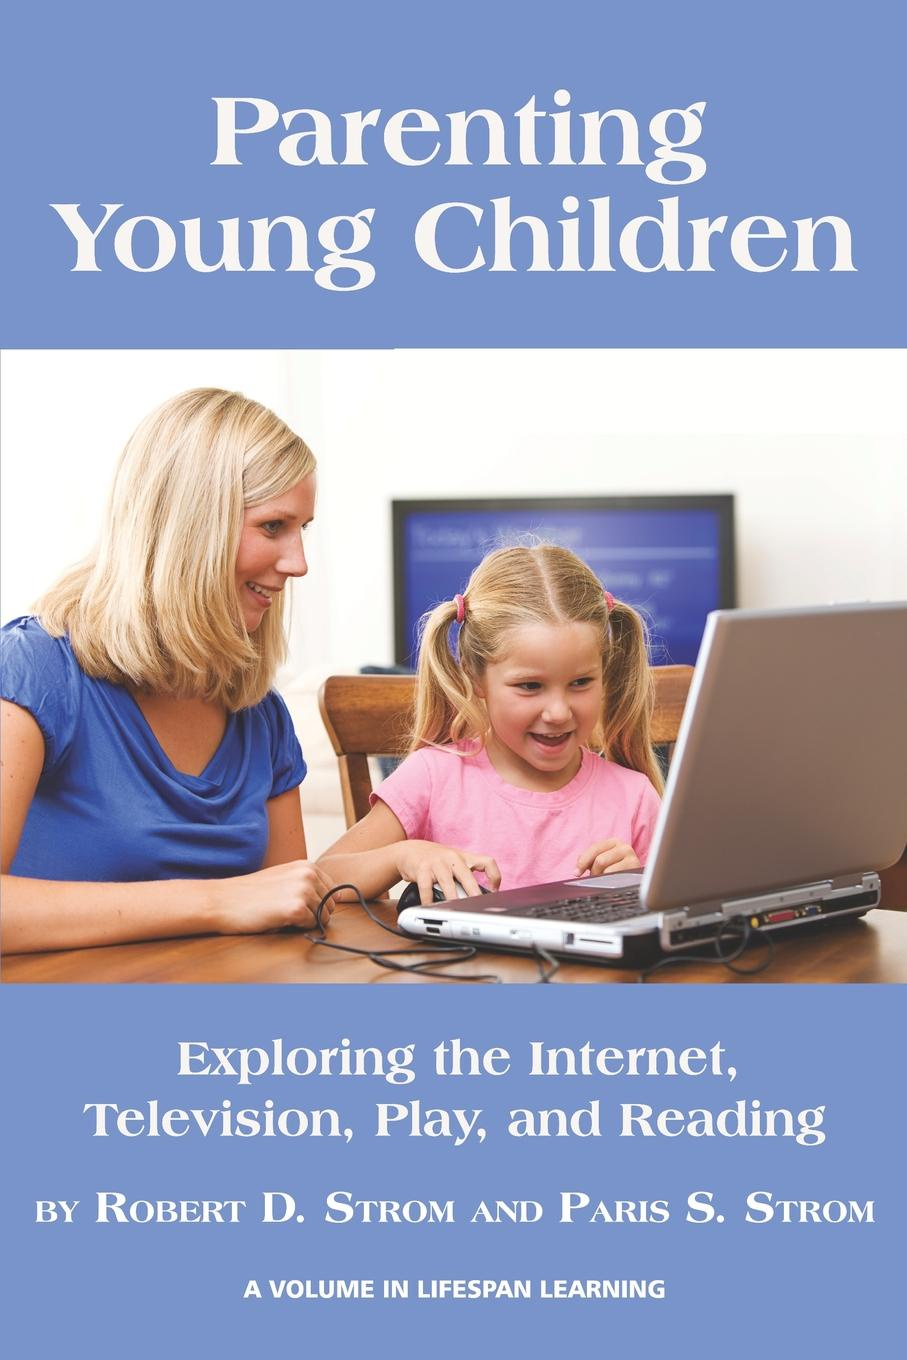 Robert D. Strom, Paris S. Strom Parenting Young Children. Exploring the Internet, Television, Play, and Reading jordan d lewis trusted partners how companies build mutual trust and win together